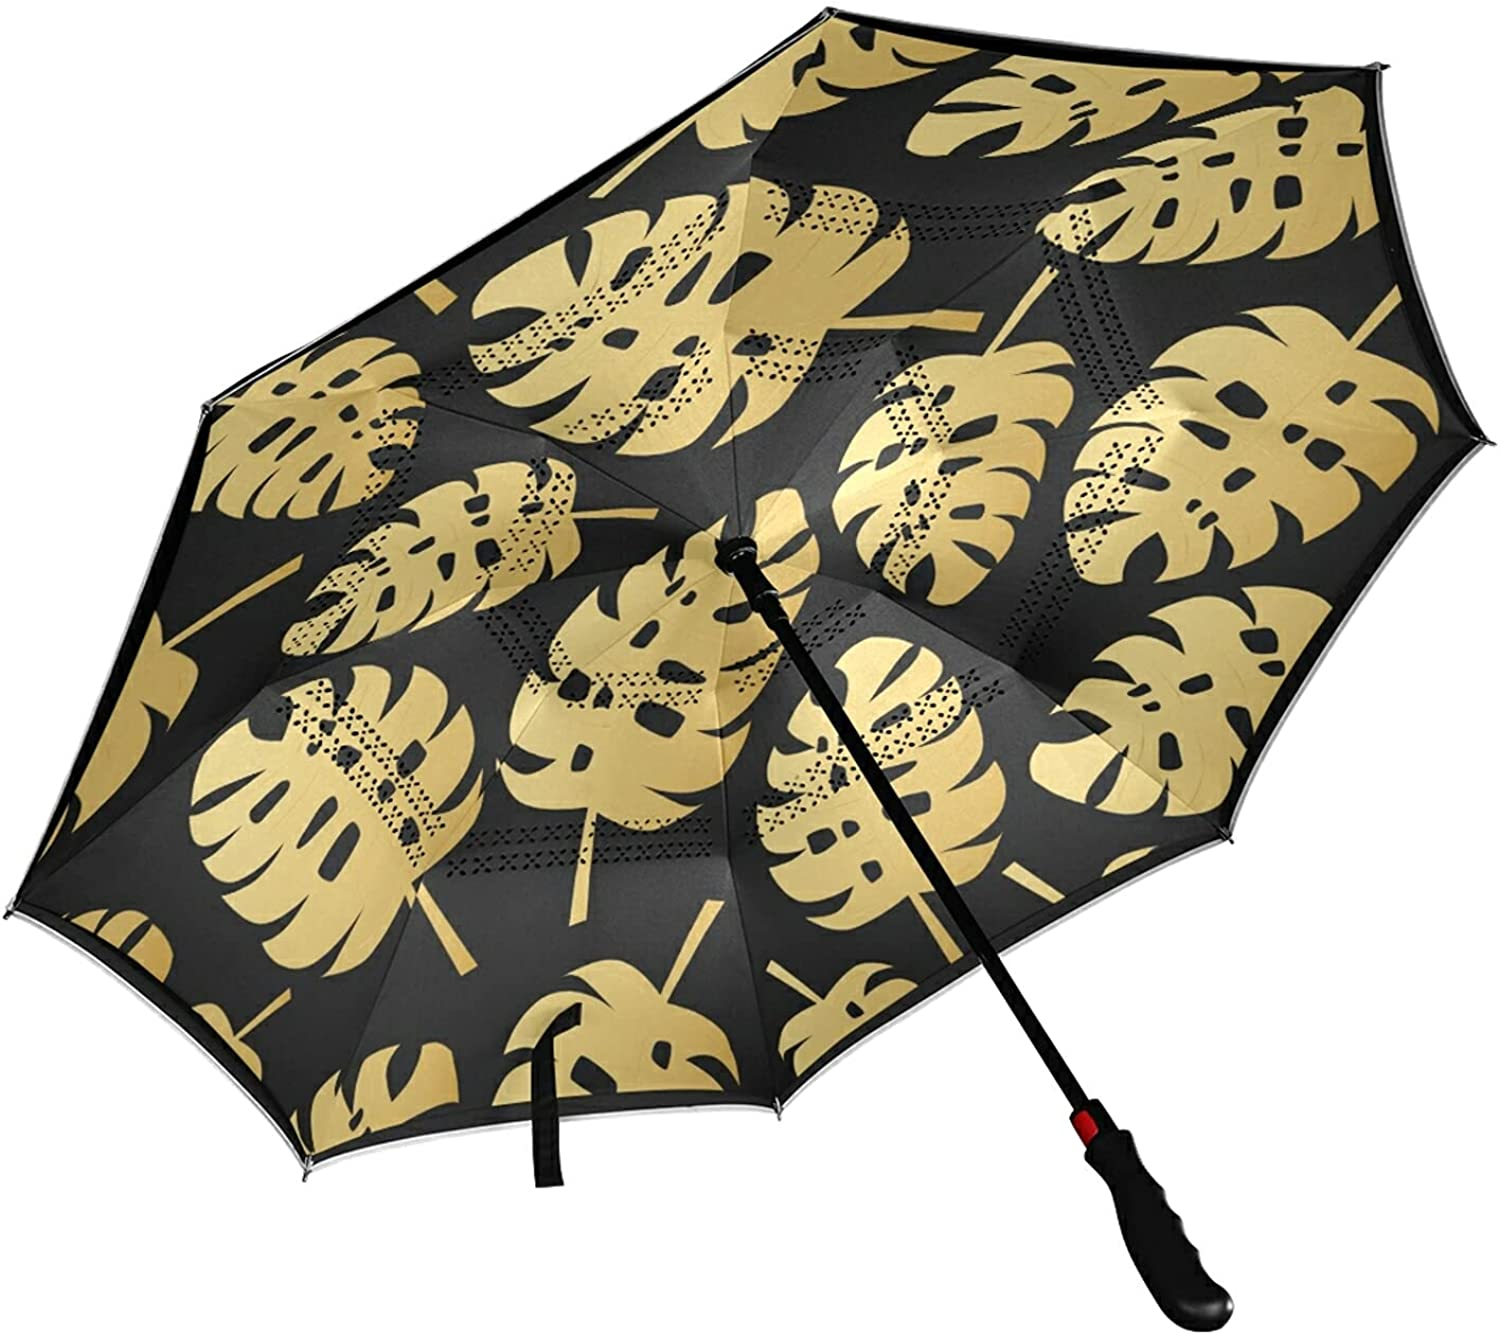 MNSRUU Reverse Tampa Mall Umbrella for Men Women Protect - and UV Dealing full price reduction Windproof